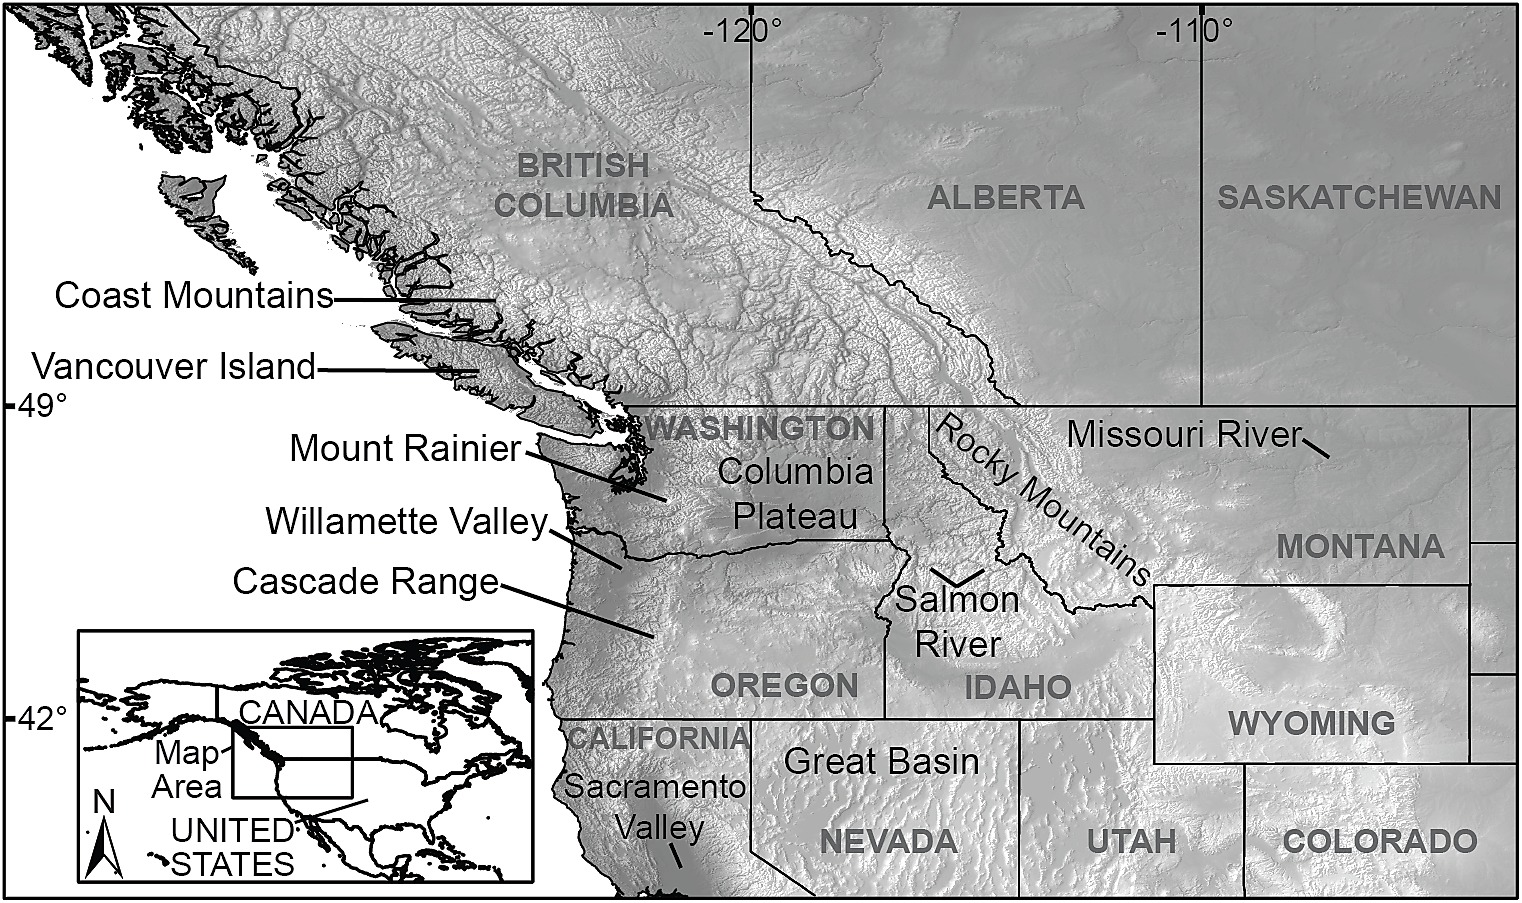 Projected Future Vegetation Changes for the Northwest United States ...